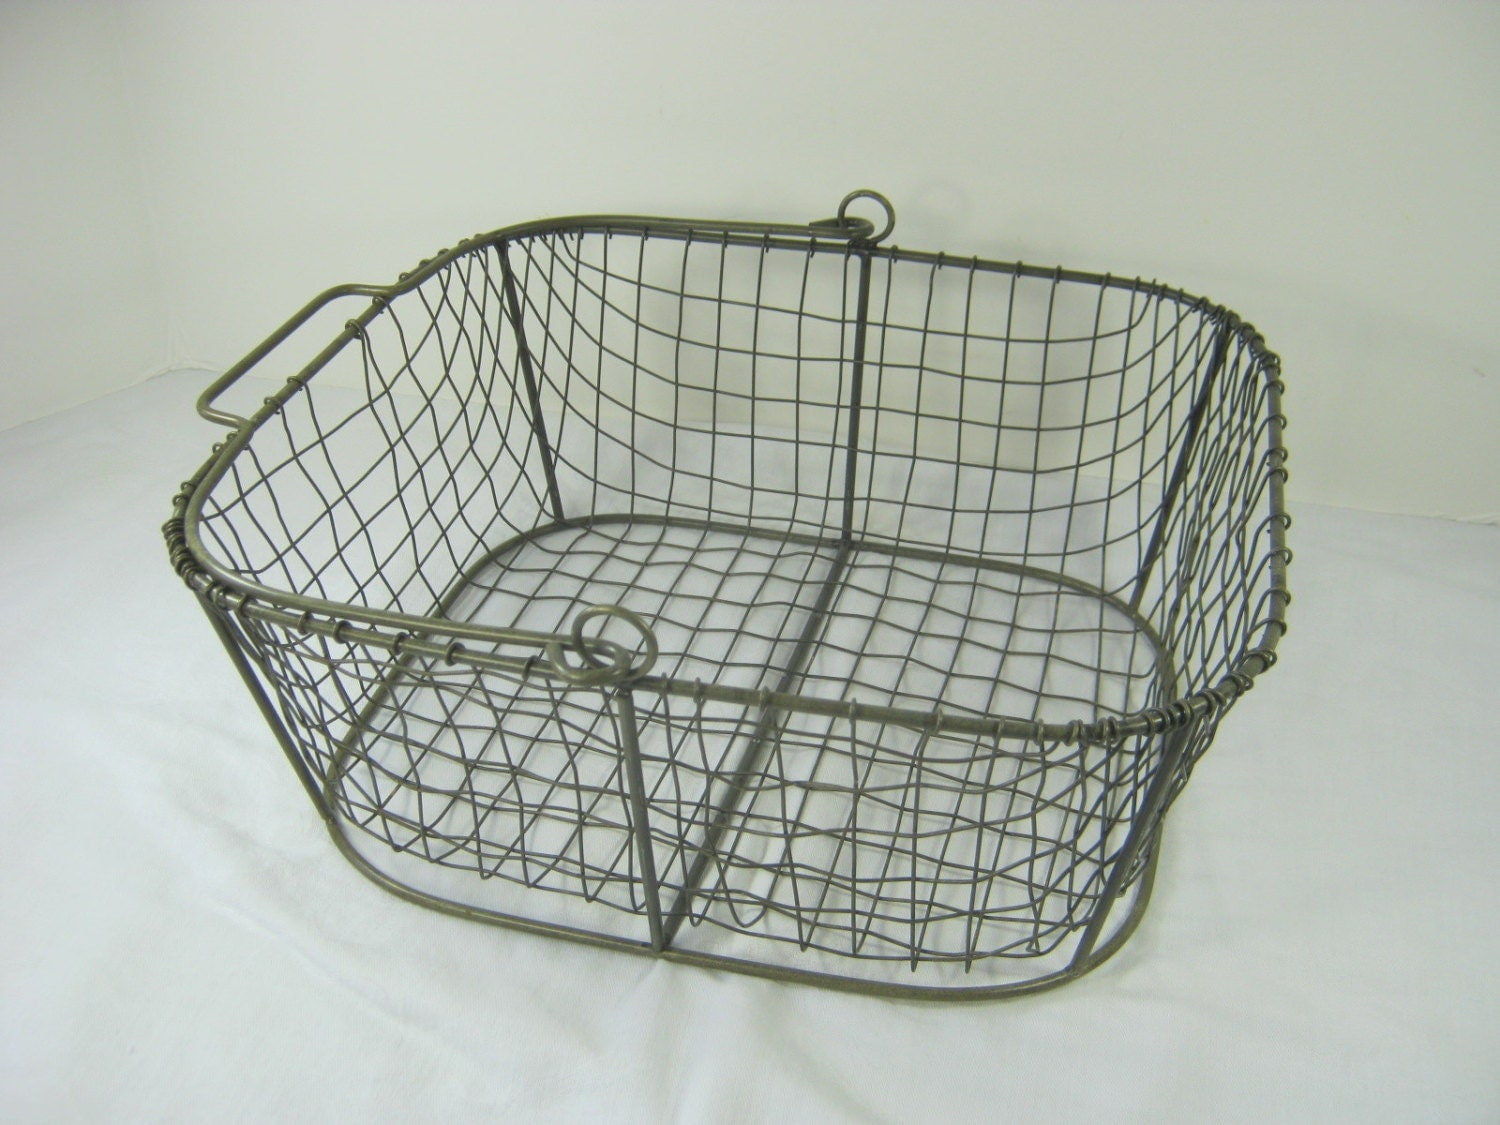 Metal is a versatile, strong material that can be used in everything from home decor to industrial uses. When it comes to home organization, wire baskets and metal boxes and bins are a fantastic choice that works well for a variety of different uses.